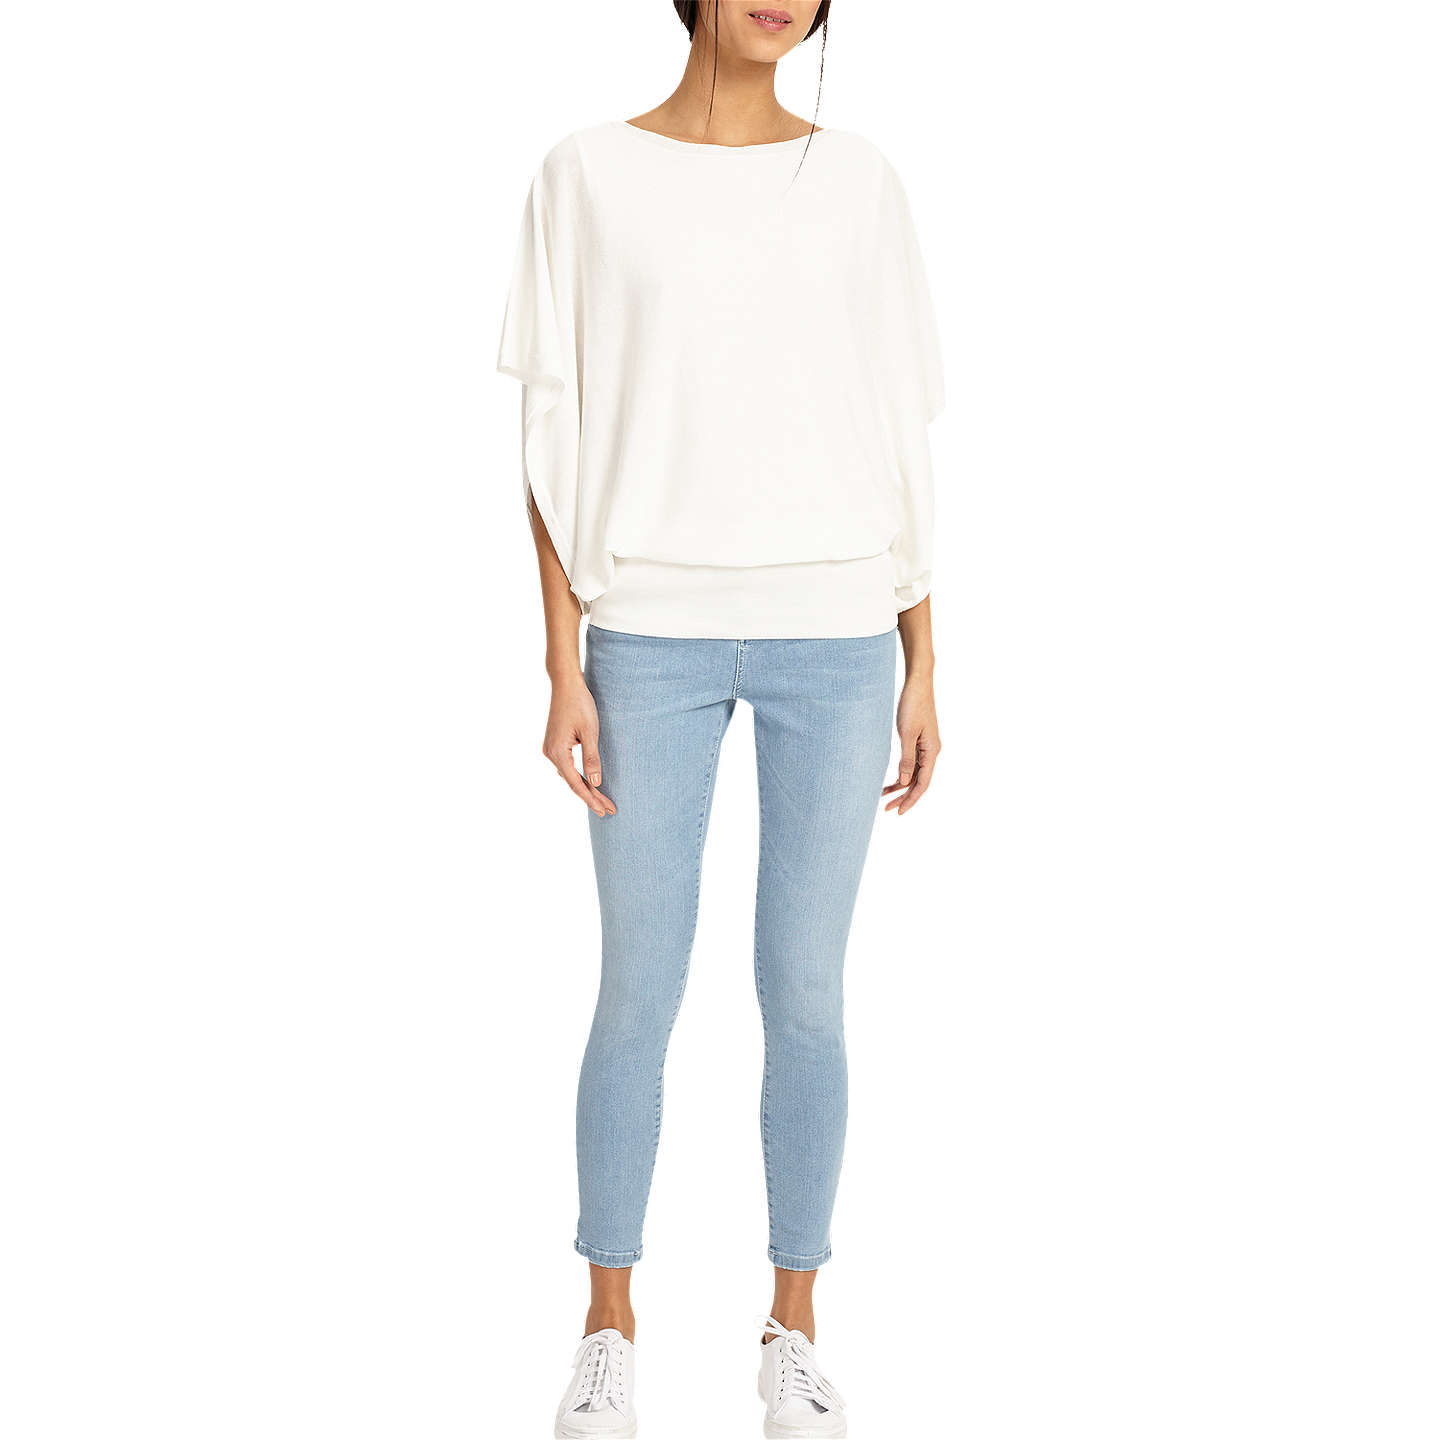 BuyPhase Eight Bionda Blouson Knit, White, XS Online at johnlewis.com